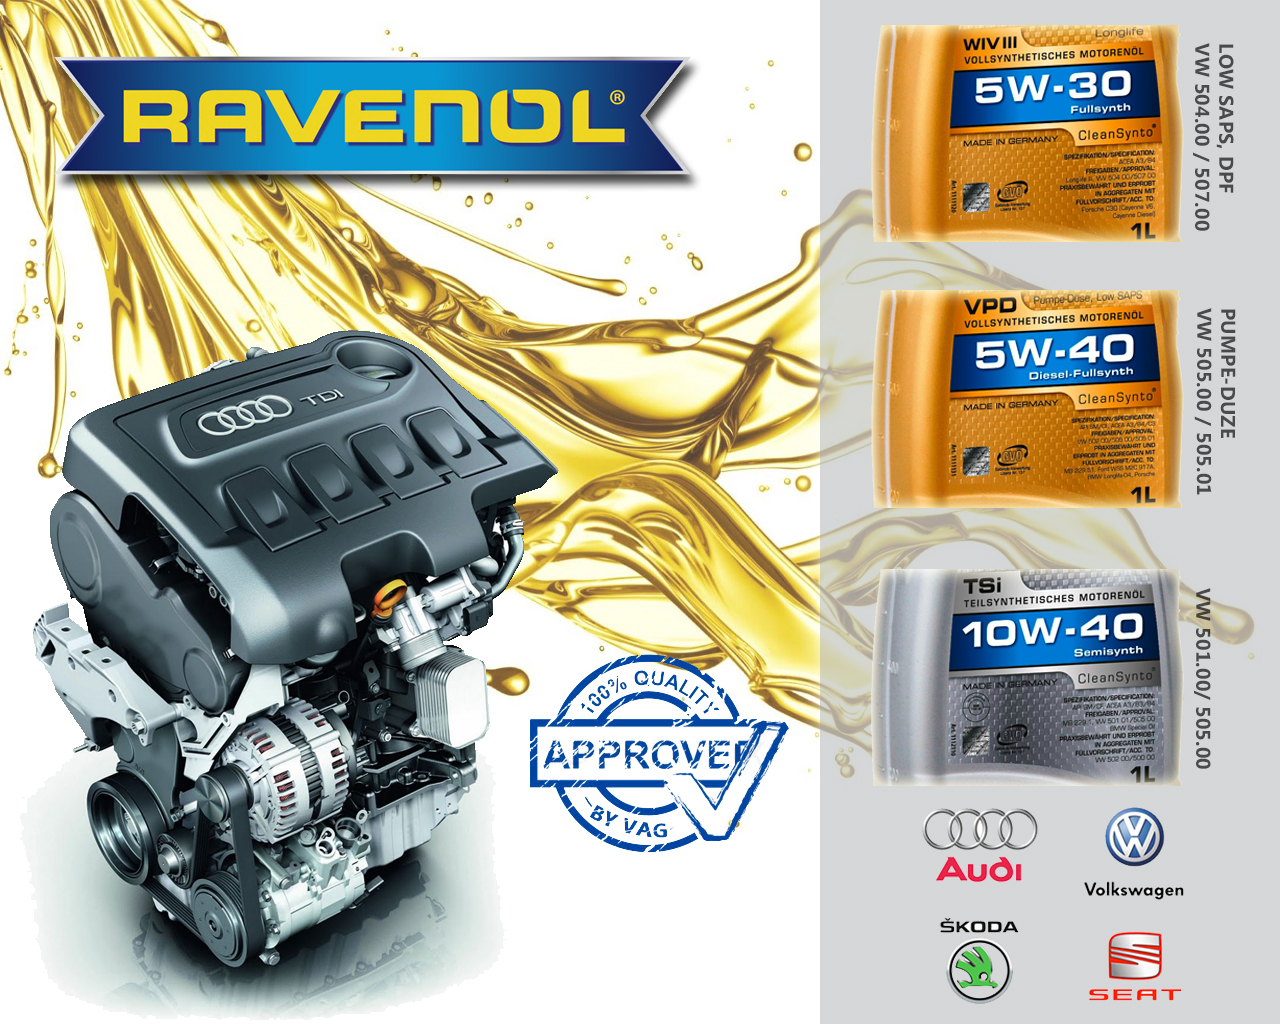 High quality motor oils approved by Volkswagen Group (VAG)